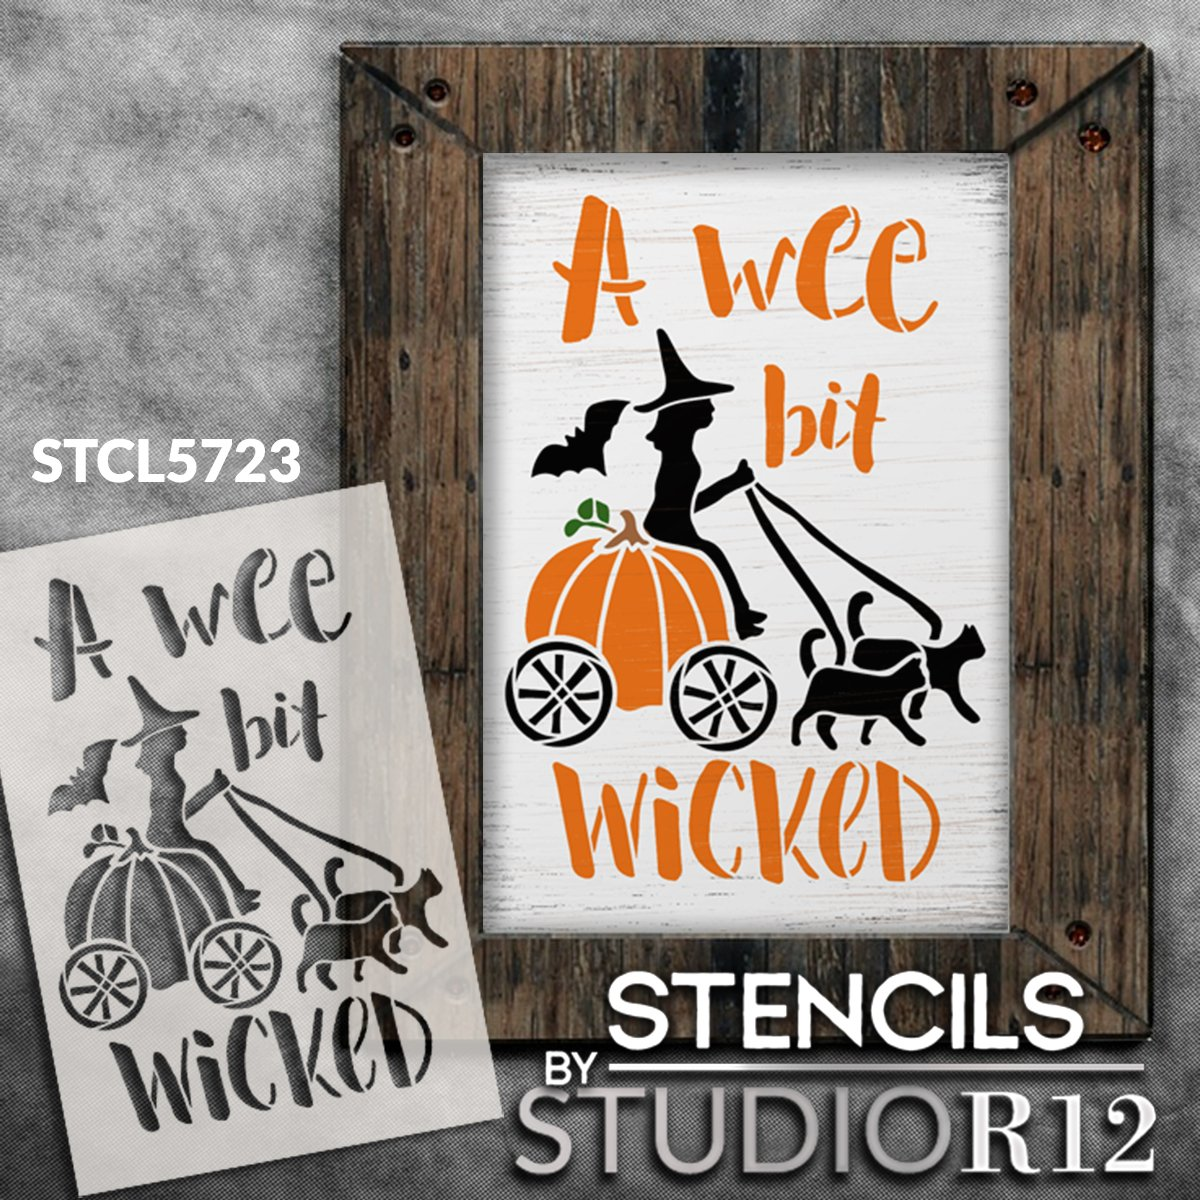 A Wee Bit Wicked Stencil by StudioR12 | Witch - Pumpkin | DIY Halloween Home Decor | Craft & Paint Wood Sign | Reusable Mylar Template | Select Size